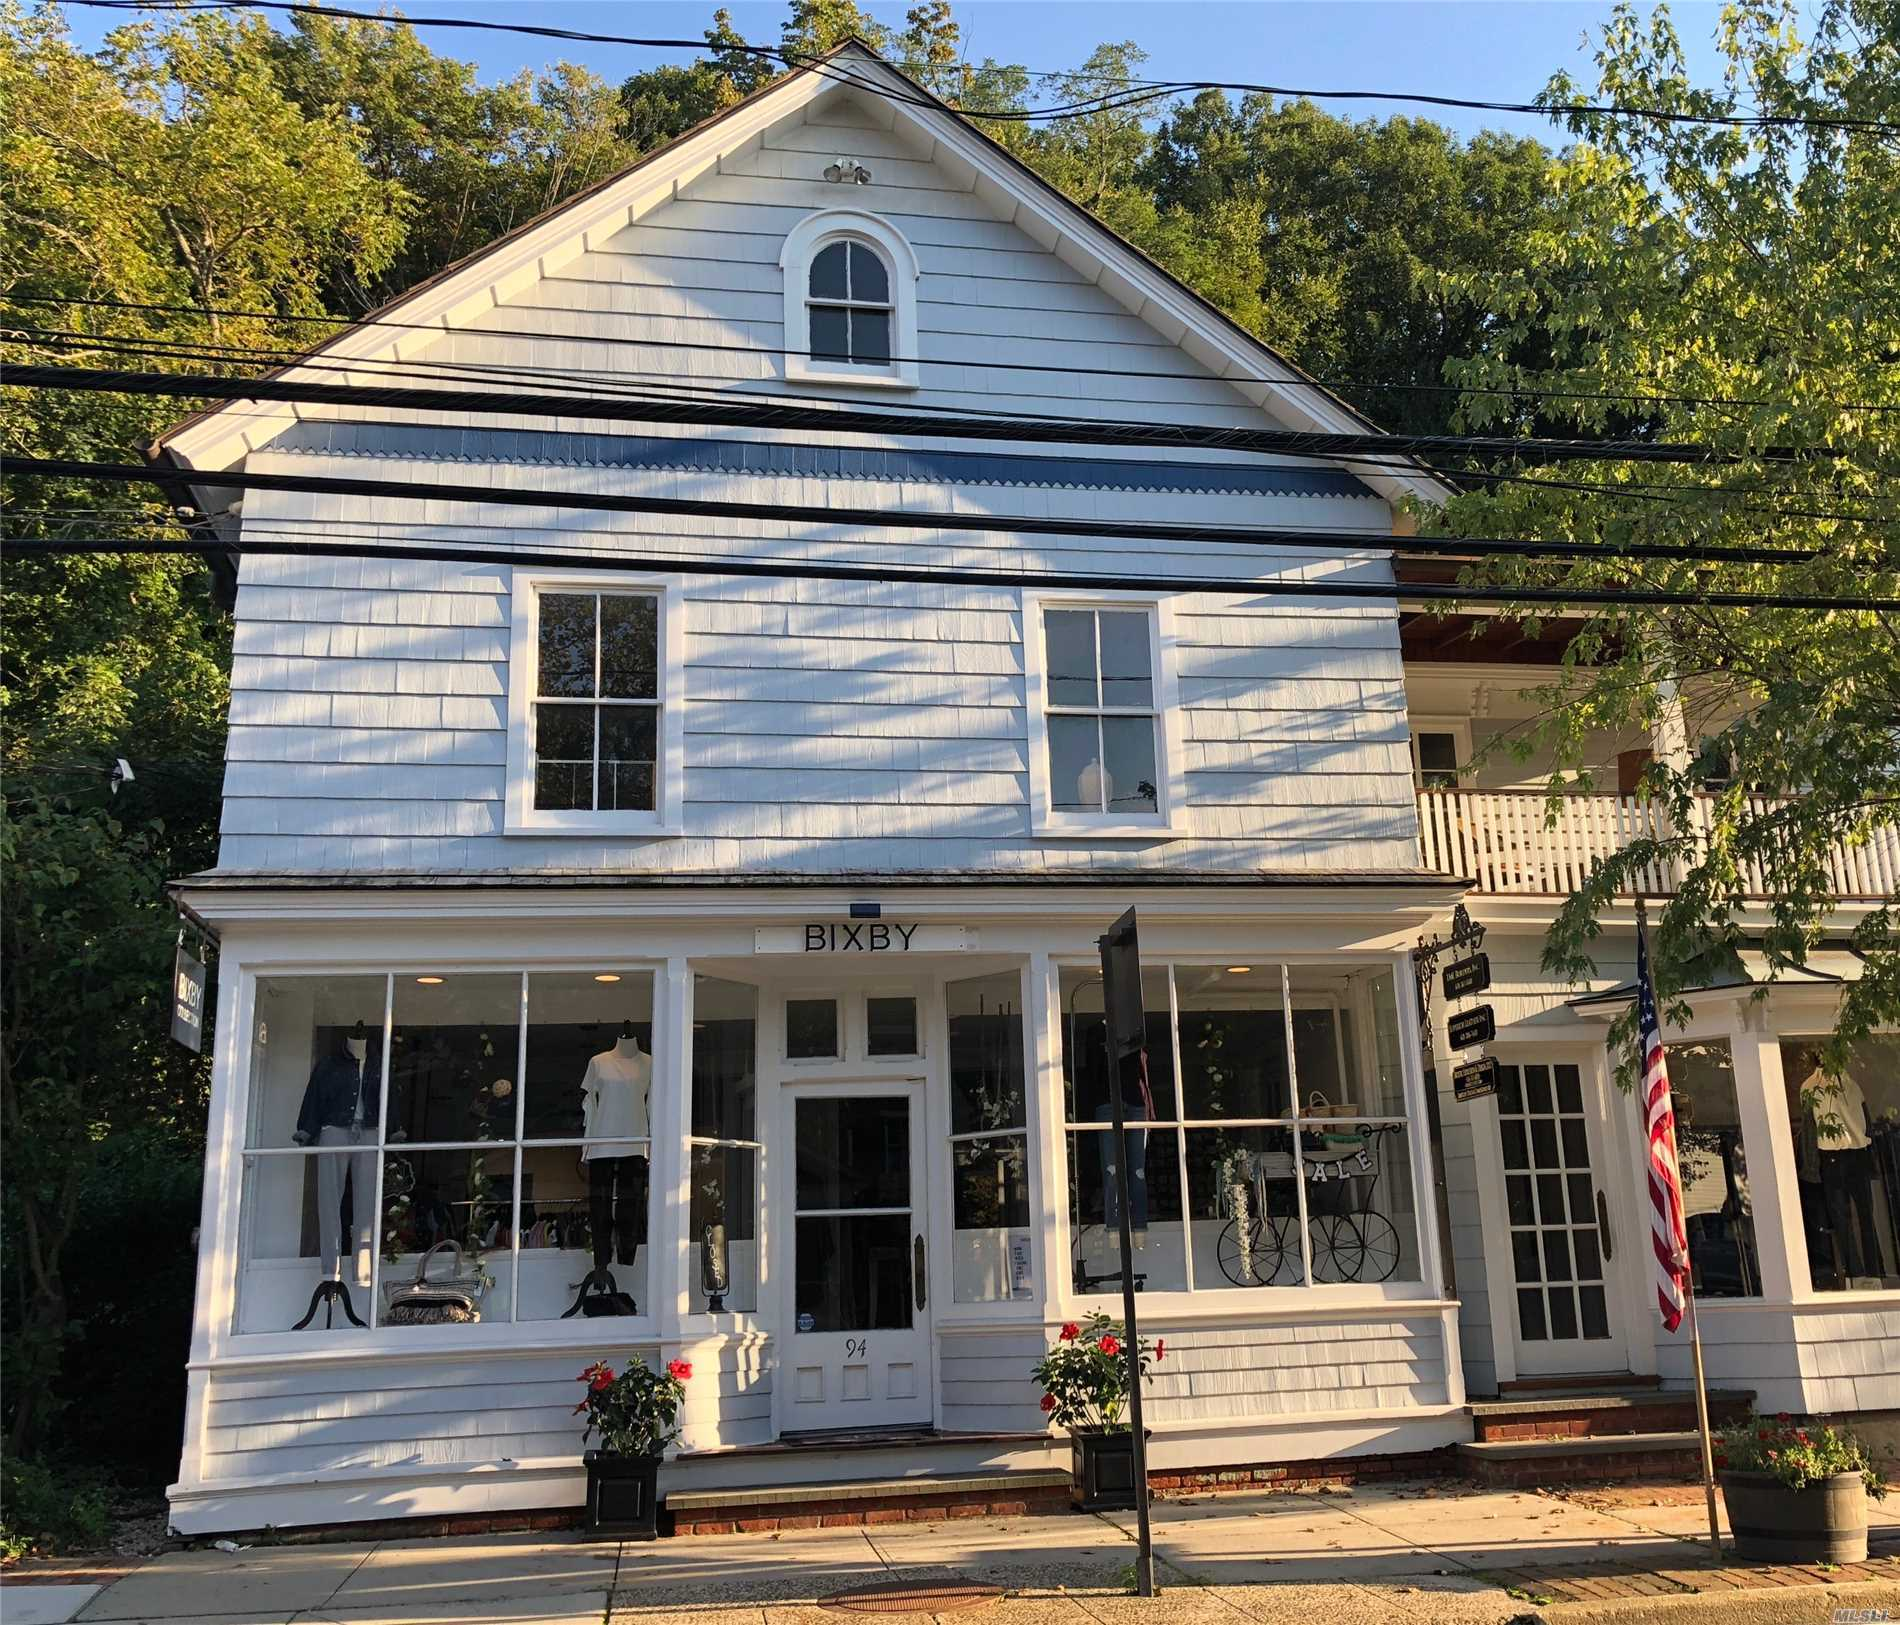 Main Street 3rd Floor Office Rental In Convenient Location In Cold Spring Harbor Adjacent To Municipal Parking. Near Restaurants, Cafe, Bank, Post Office & Shops.